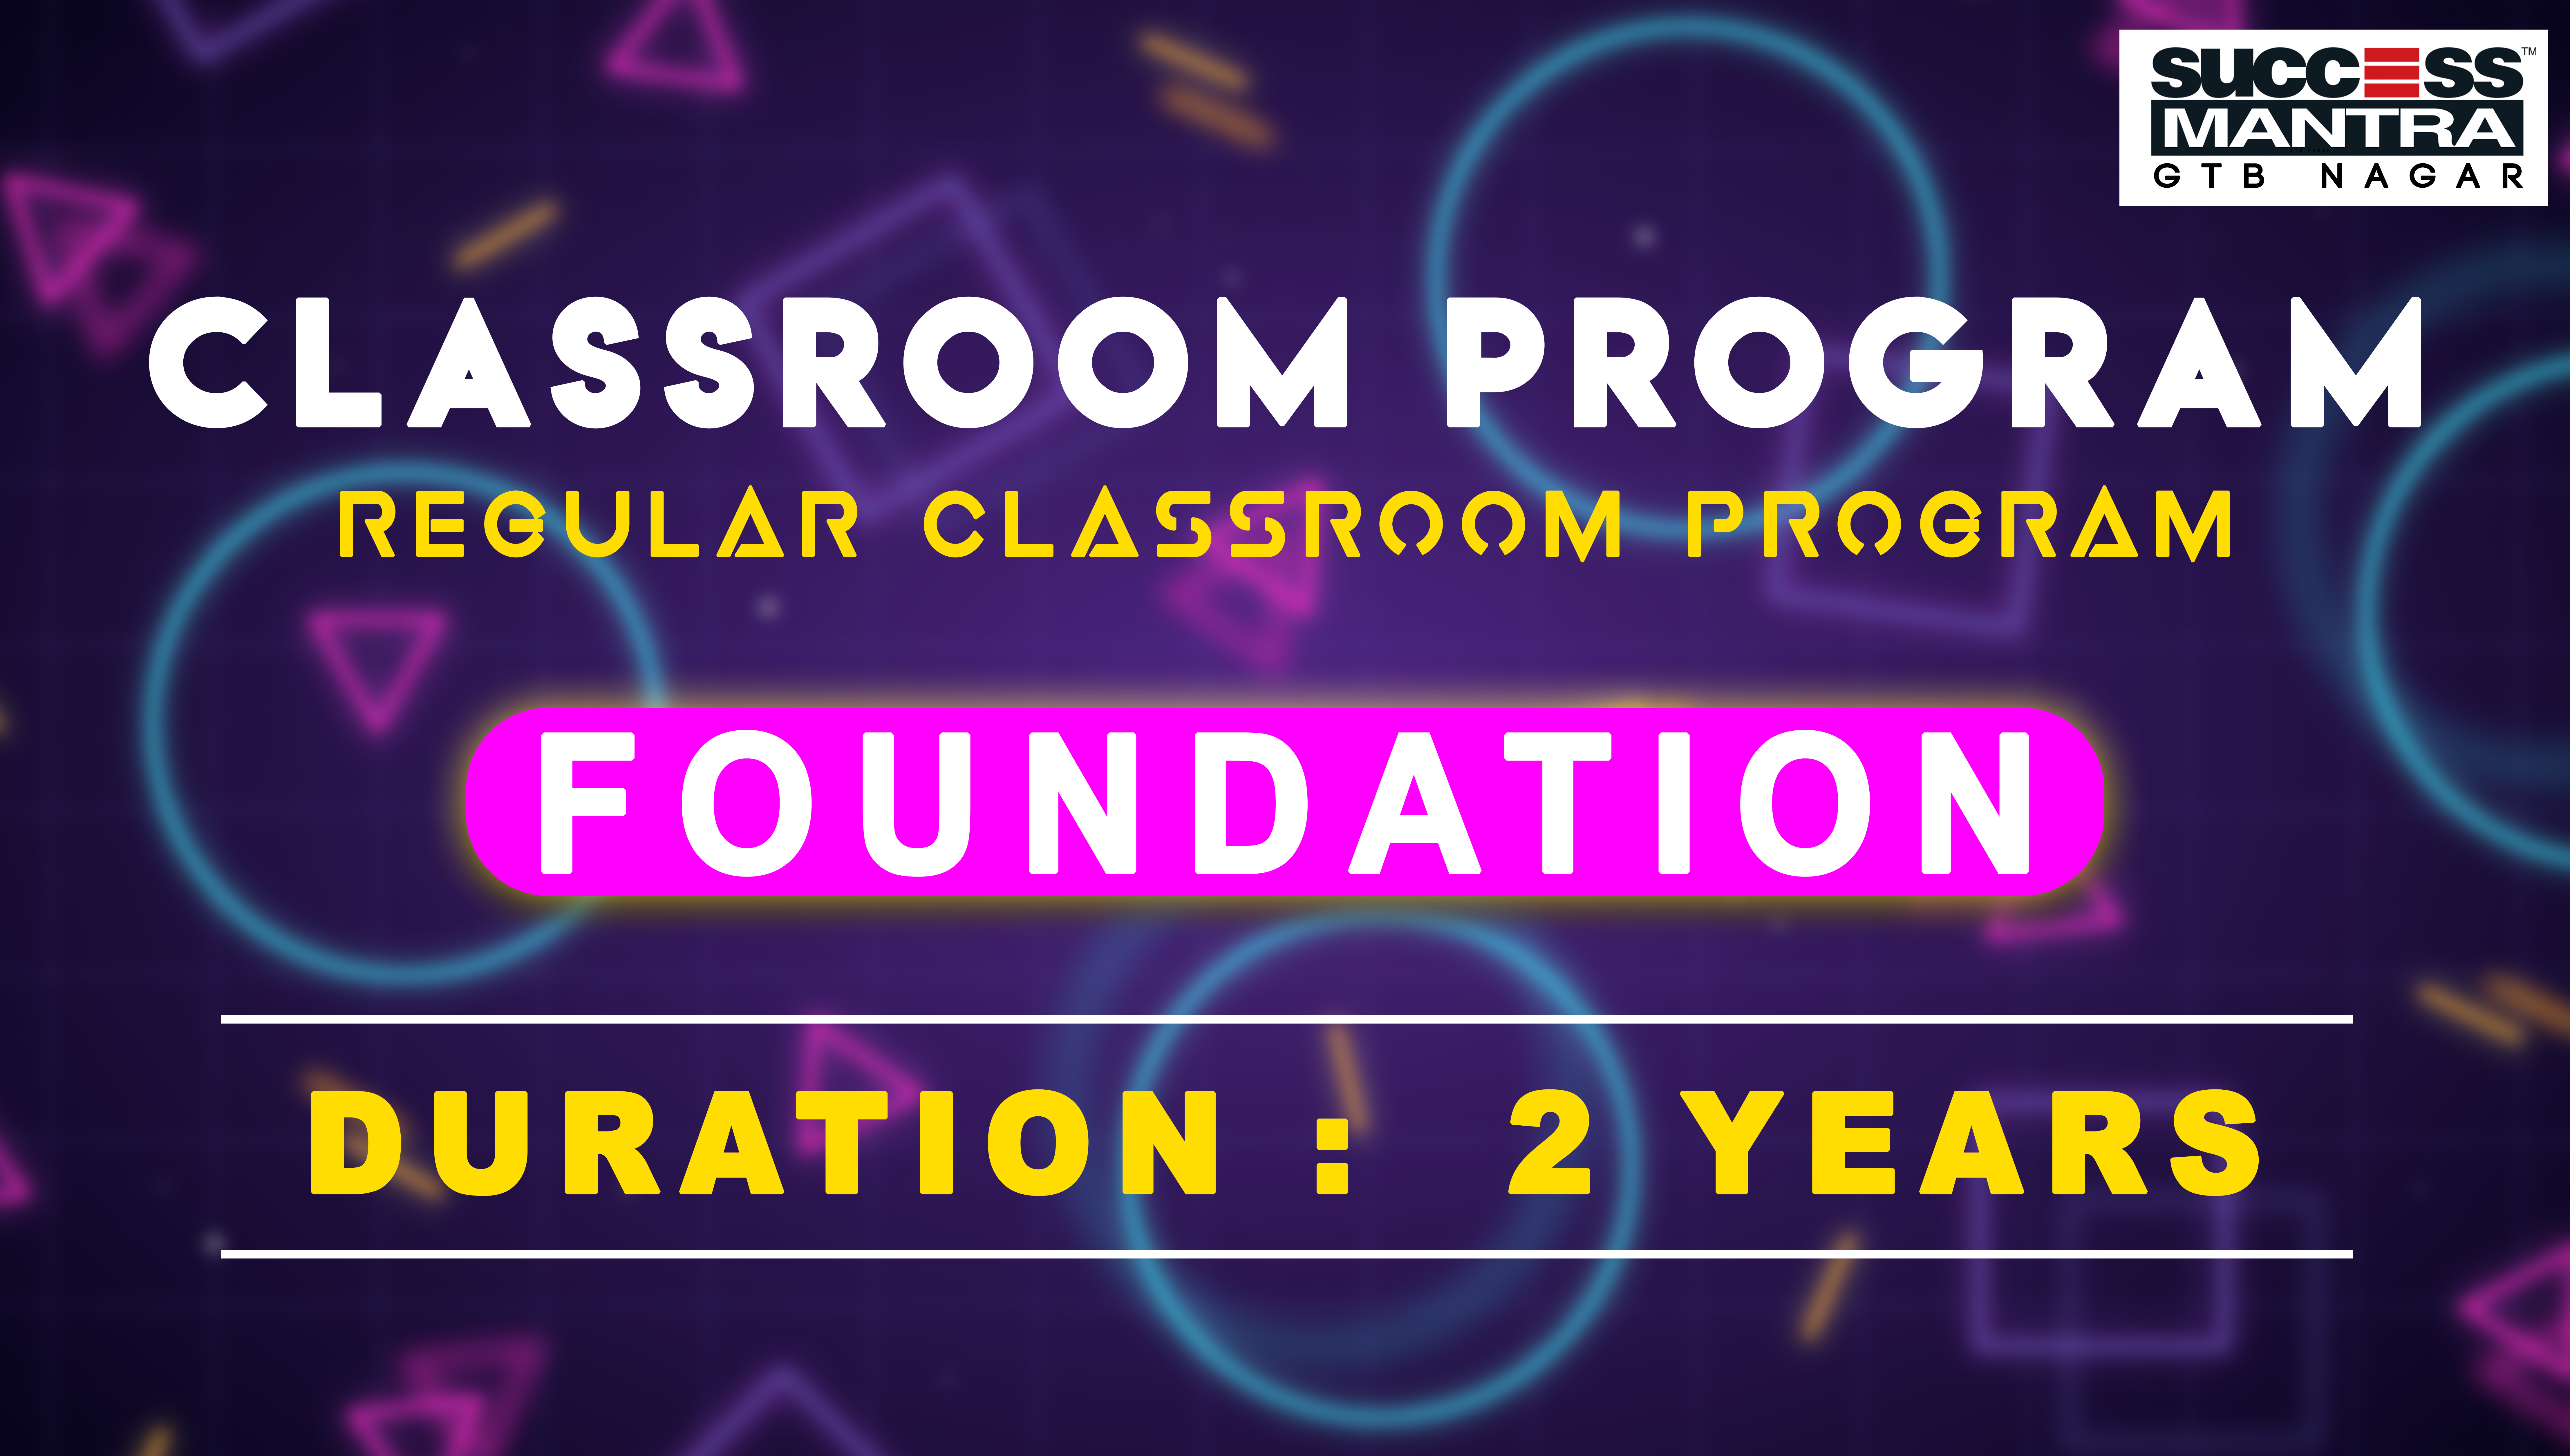 CLAT Classroom Coaching Program | FOUNDATION Two years Law Course at Success Mantra | Success Mantra Coaching G.T.B Nagar